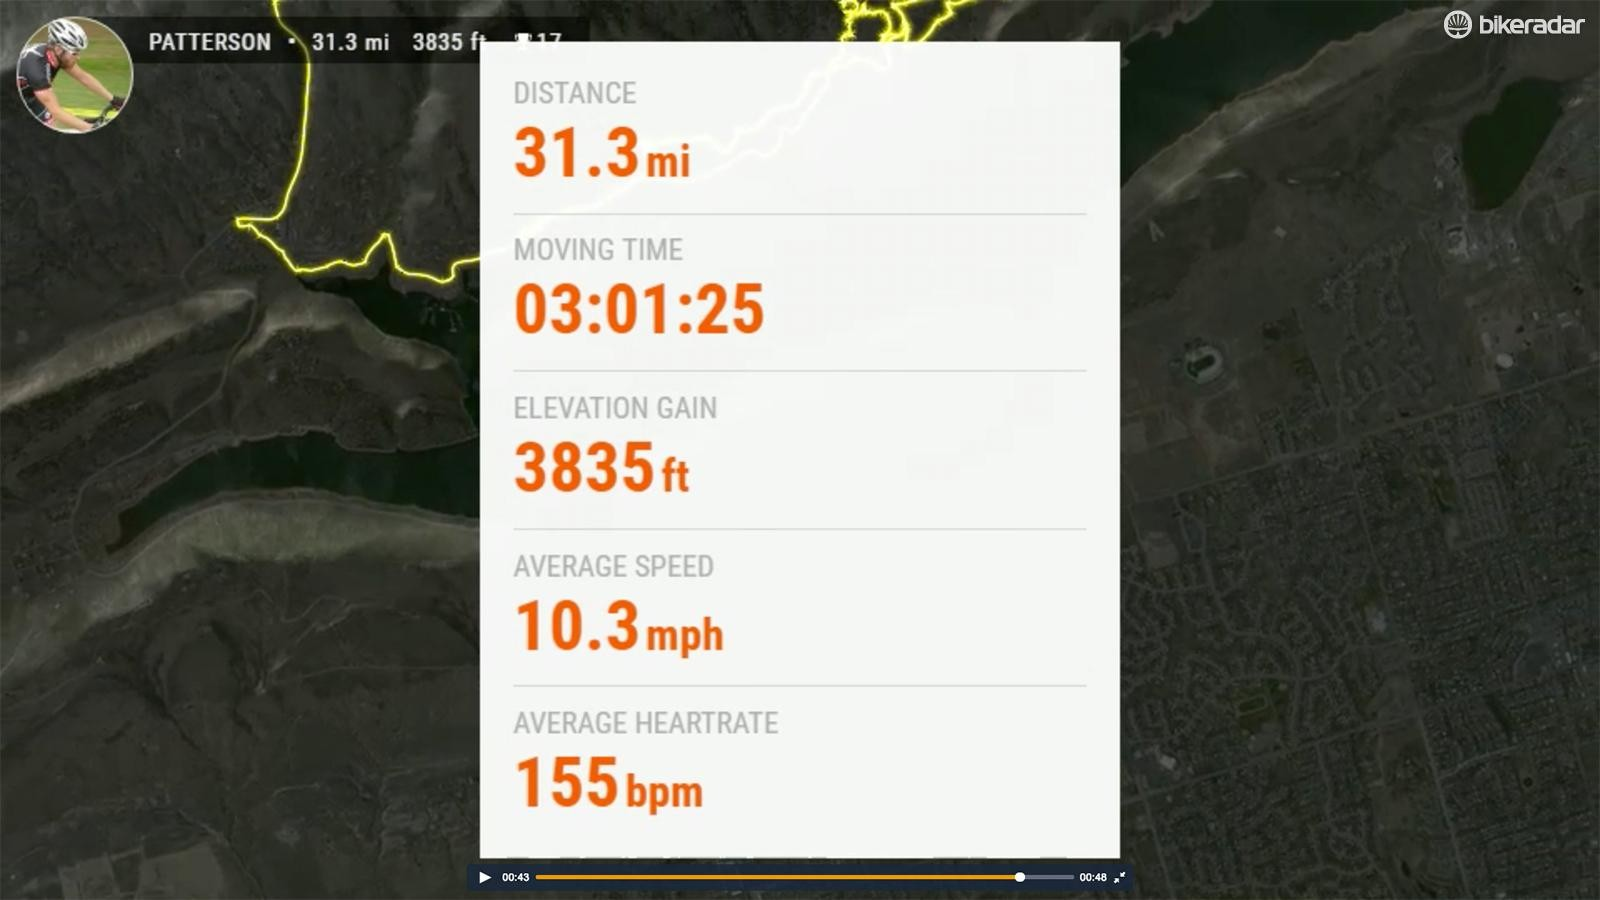 Relive can summarize your ride using info from Strava